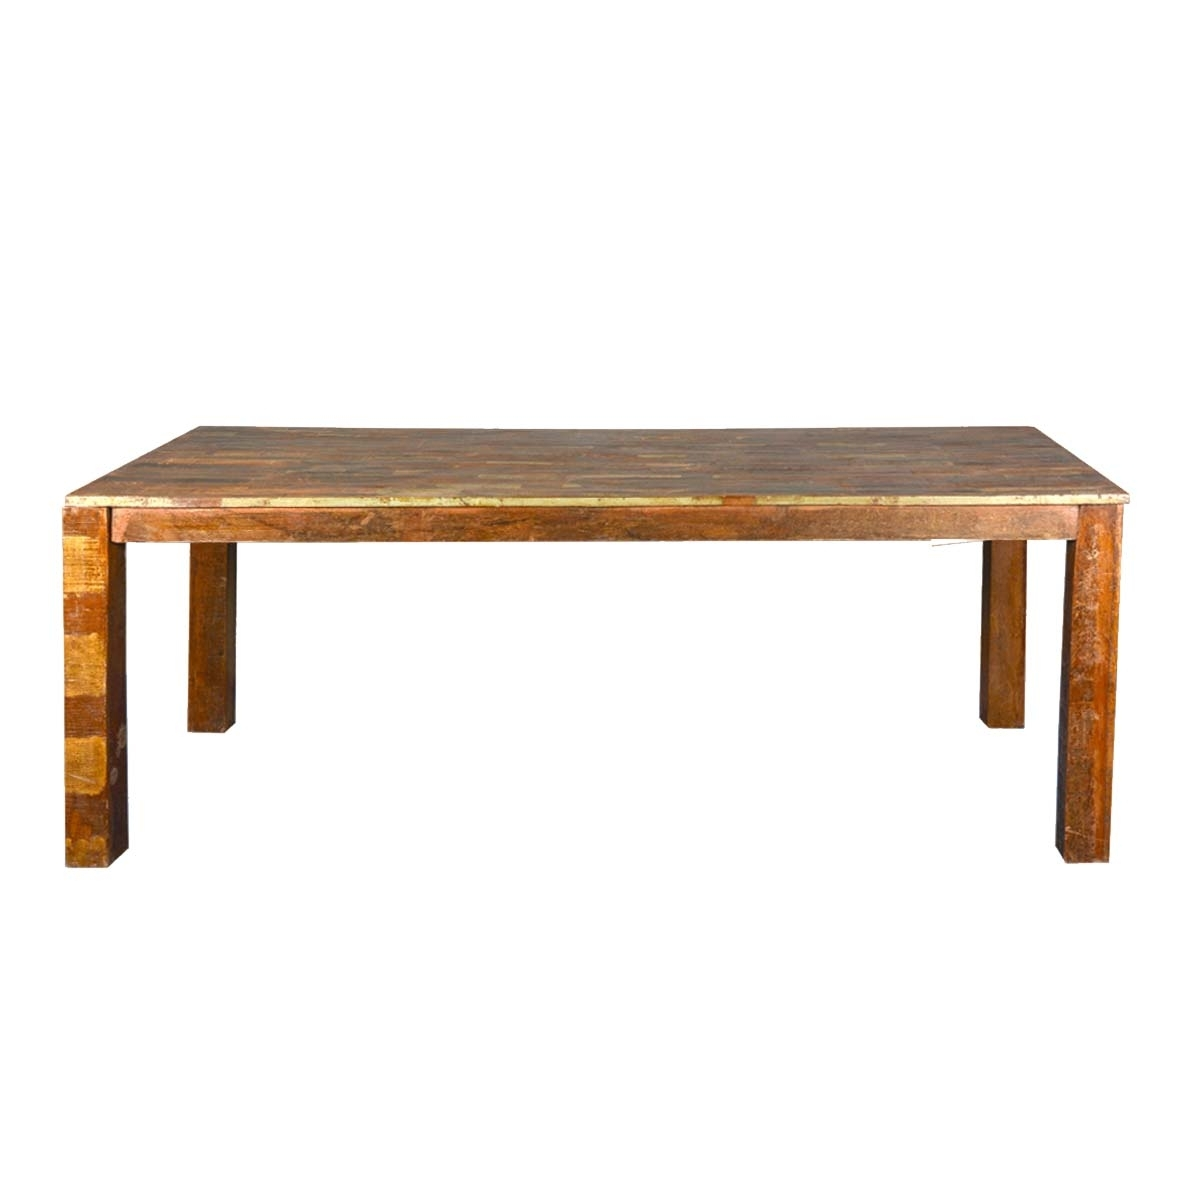 Rustic Parquet Top Reclaimed Wood Dining Table In Newest Parquet Dining Tables (Image 18 of 20)